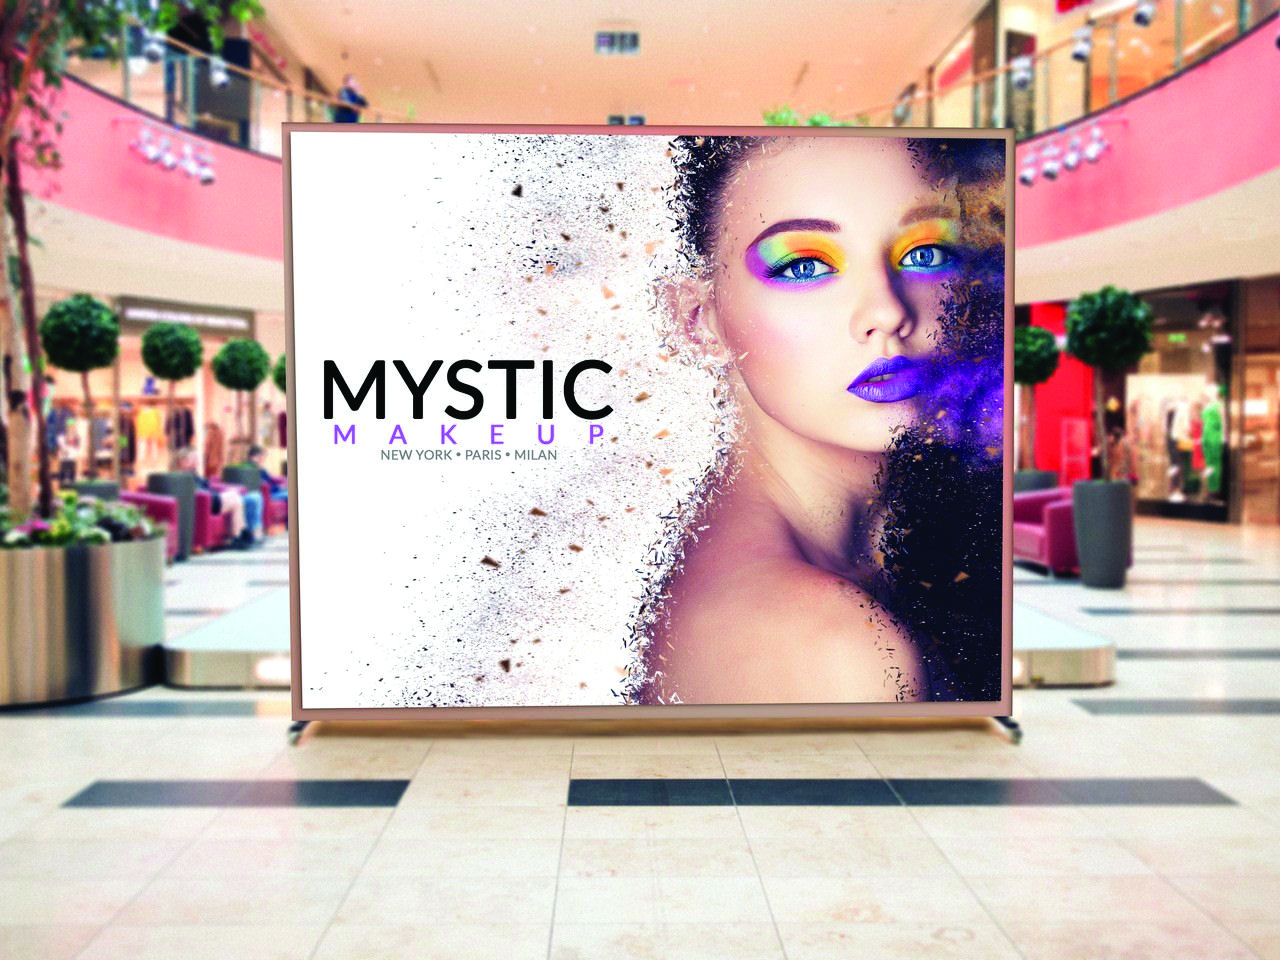 Backlit digital textiles are being used in retail environments.